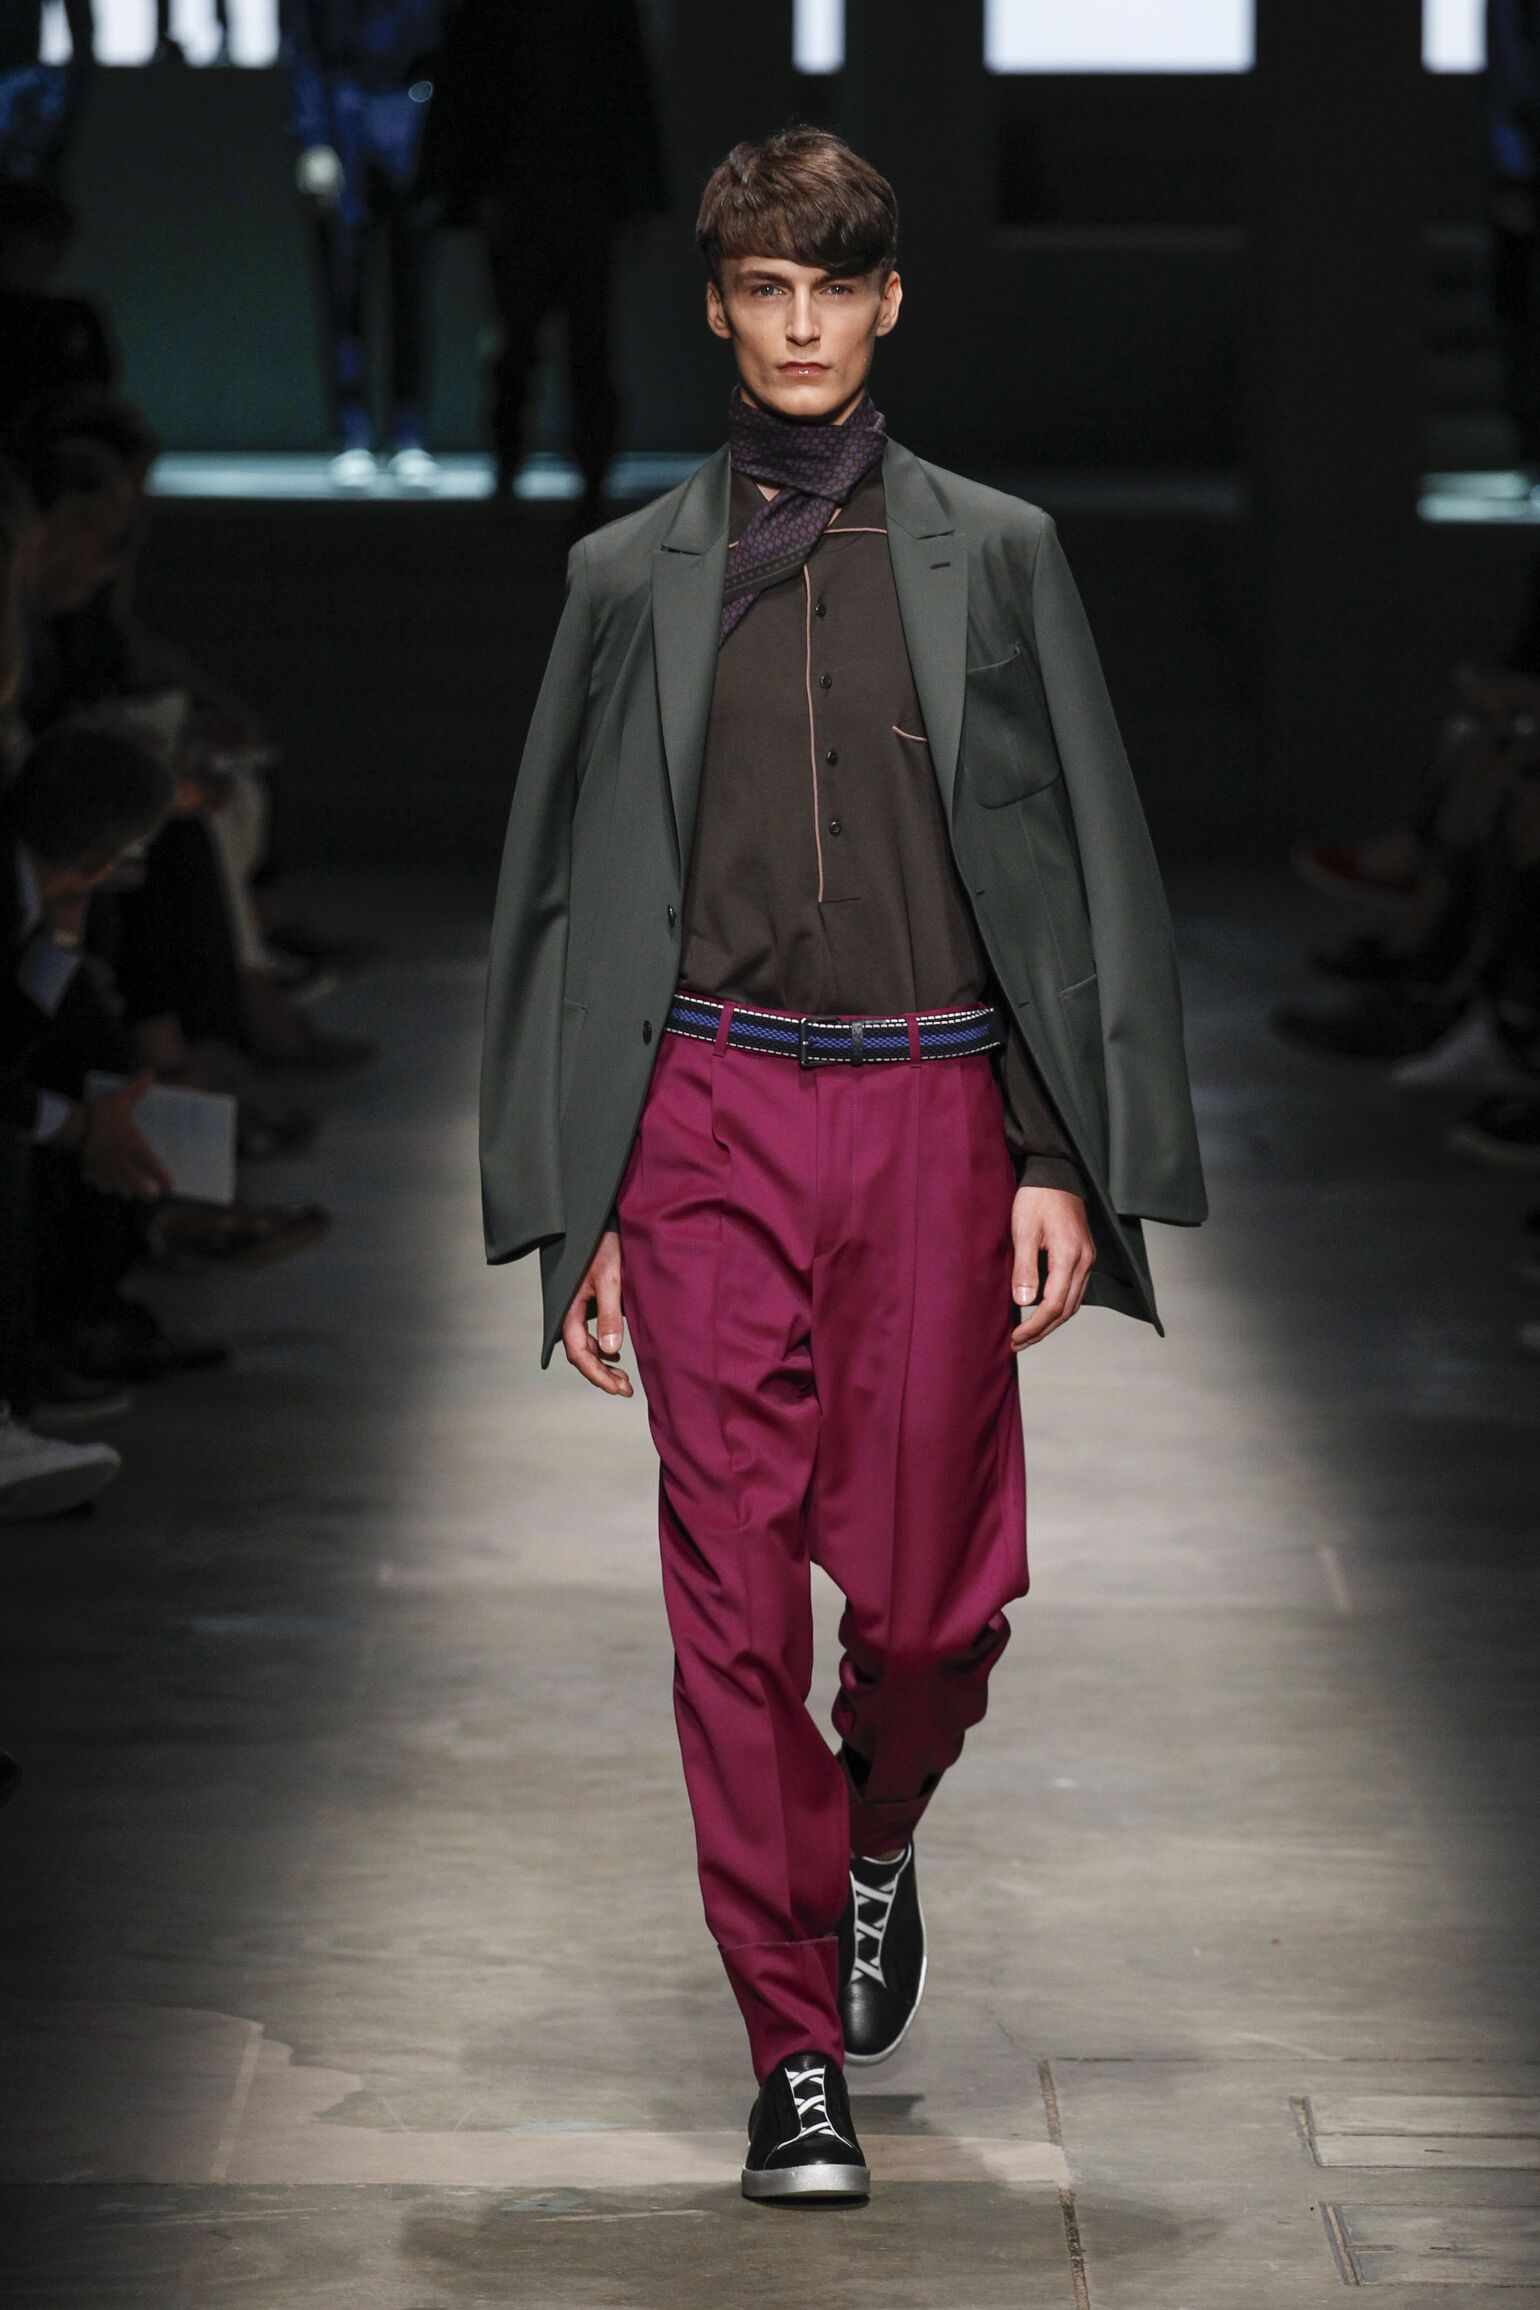 2015 Catwalk Ermenegildo Zegna Couture Man Fashion Show Summer